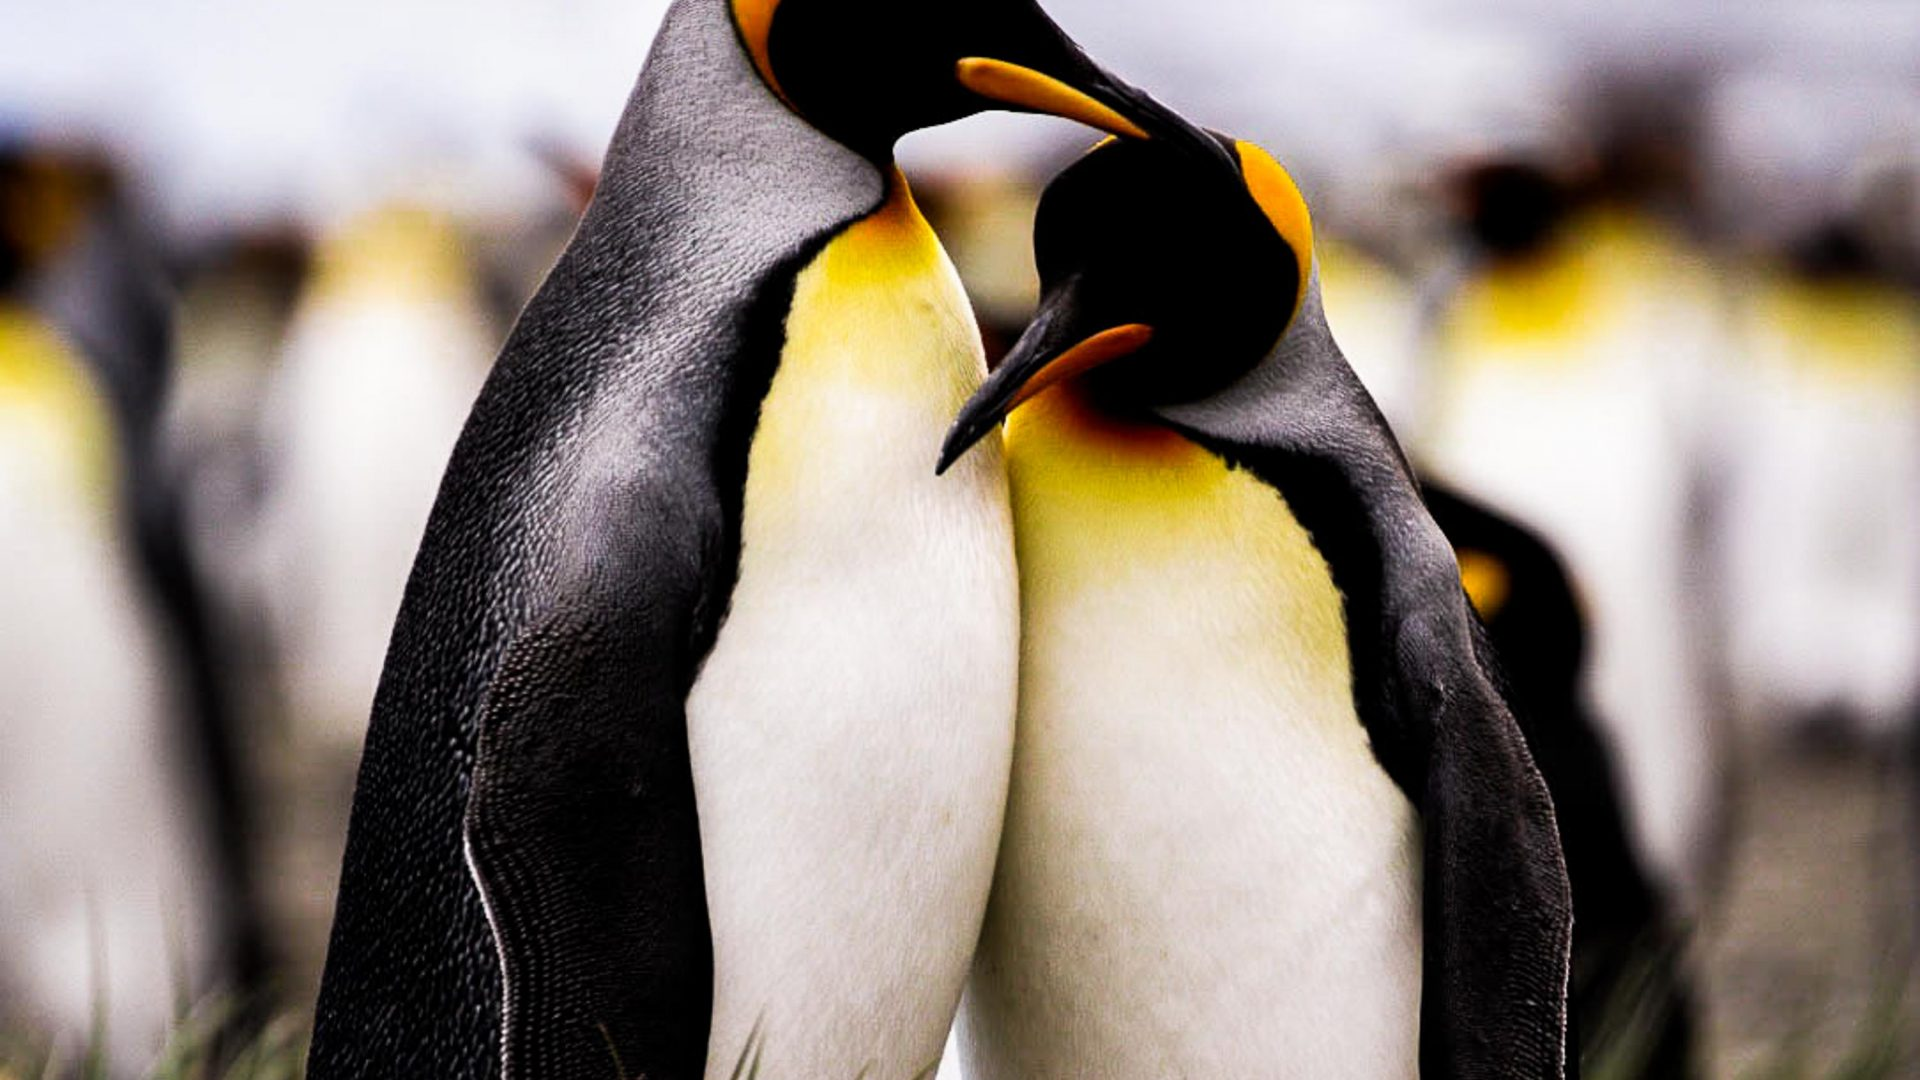 At Salisbury Plain, an estimated 60,000 pairs of king penguins gather to breed.